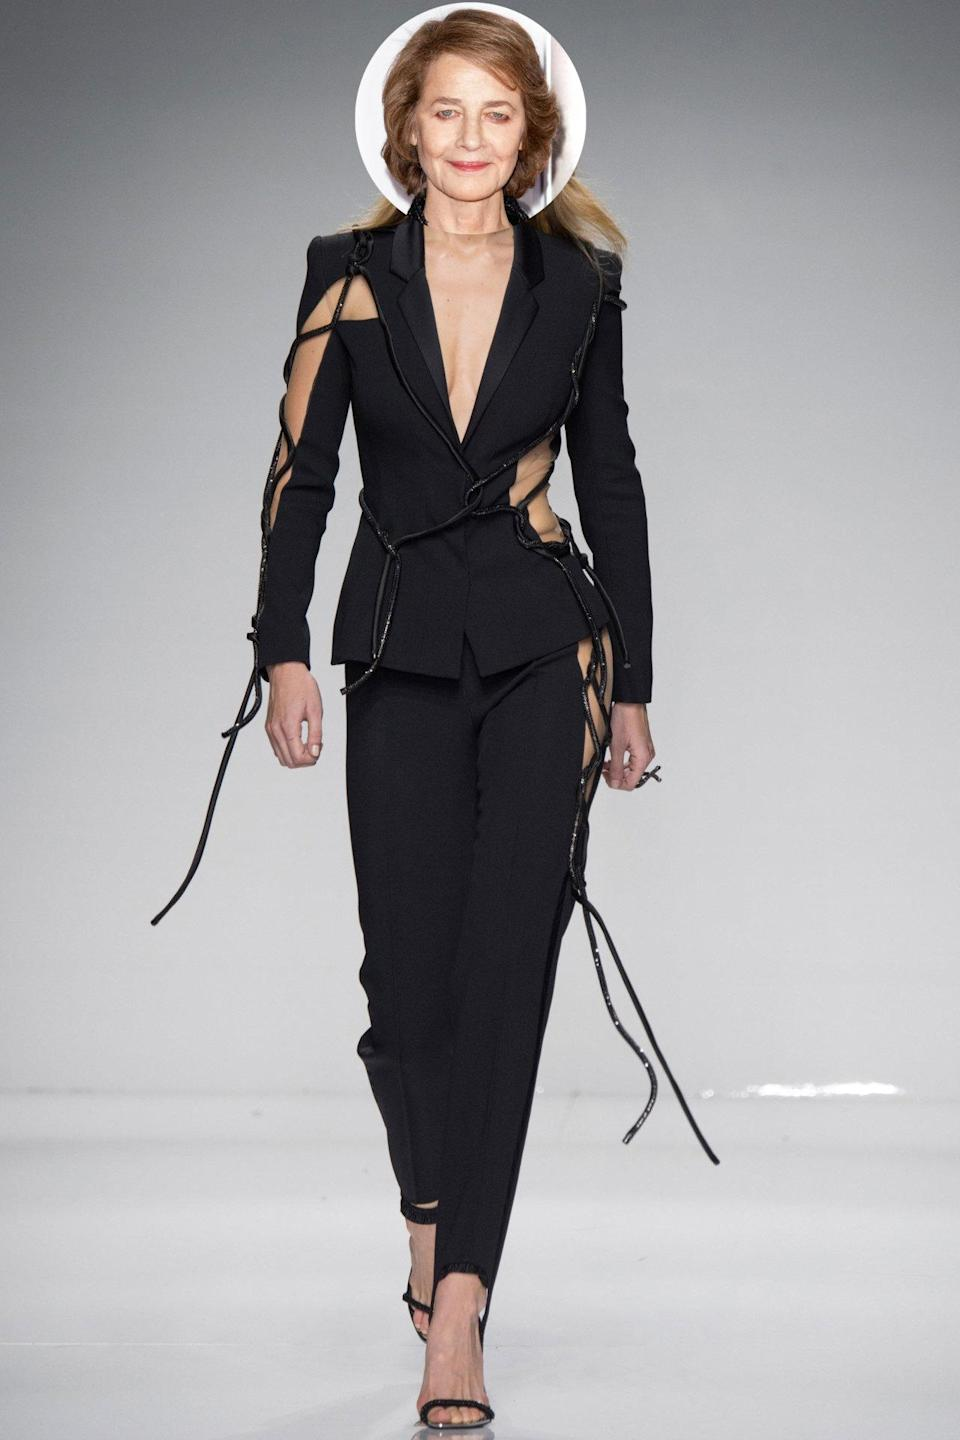 <p>She doesn't generally bare this much skin, but we'd love to see the 70-year-old nominee arrive in something timeless and daring like this Versace suit.</p>